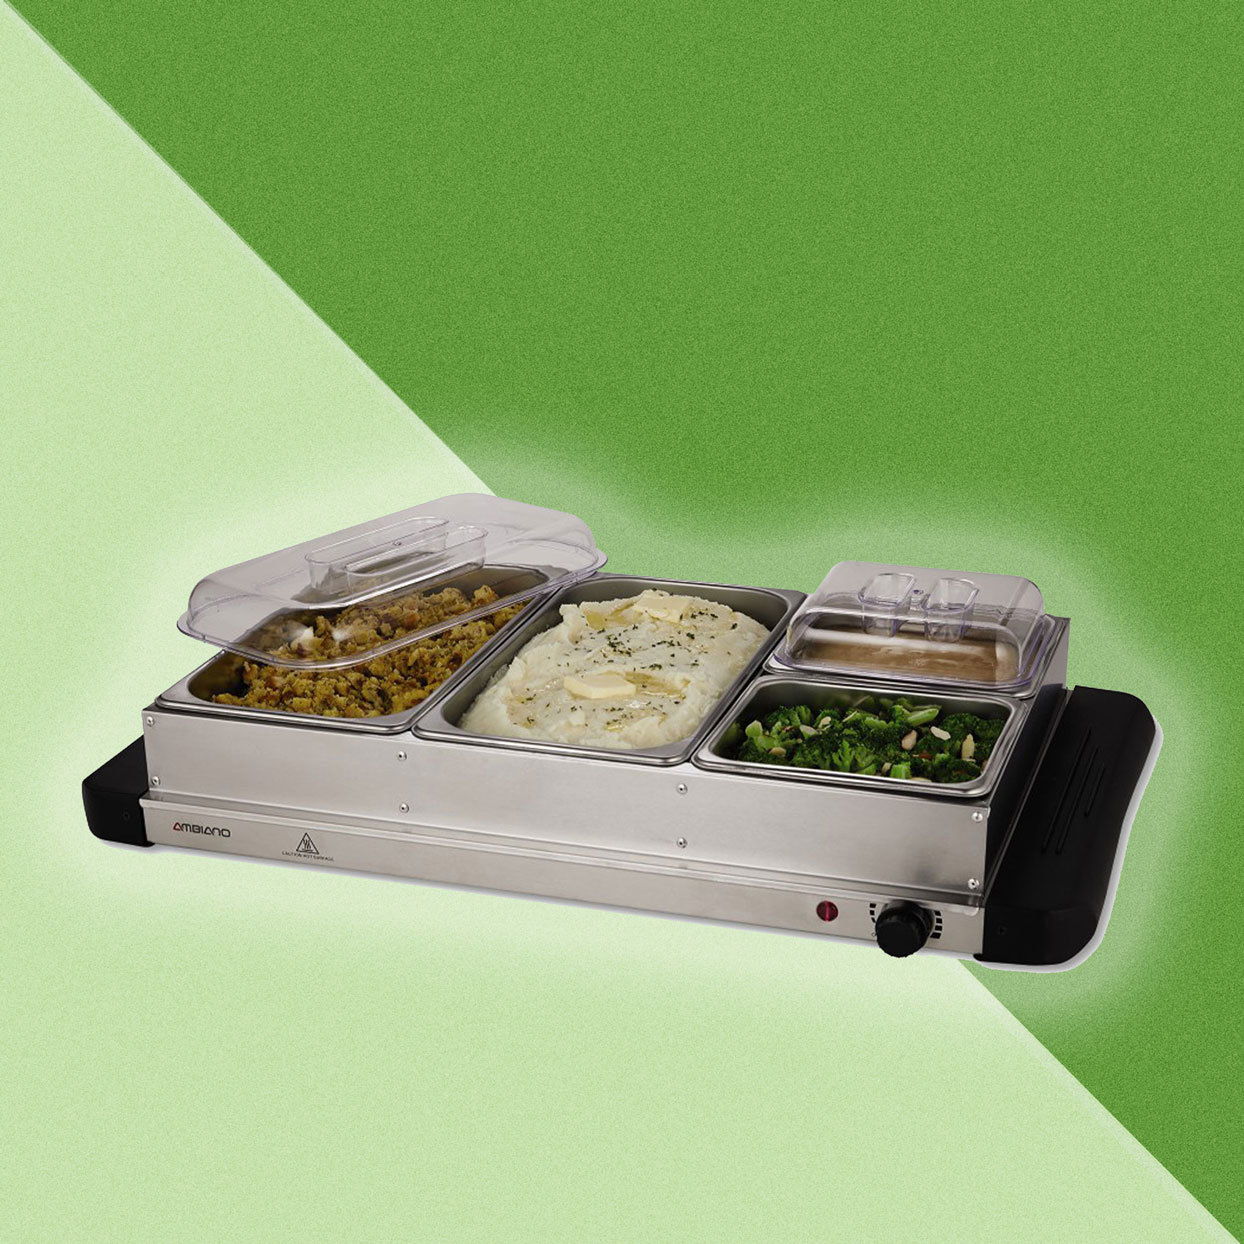 Warming Chafing Dish for Thanksgiving at Aldi